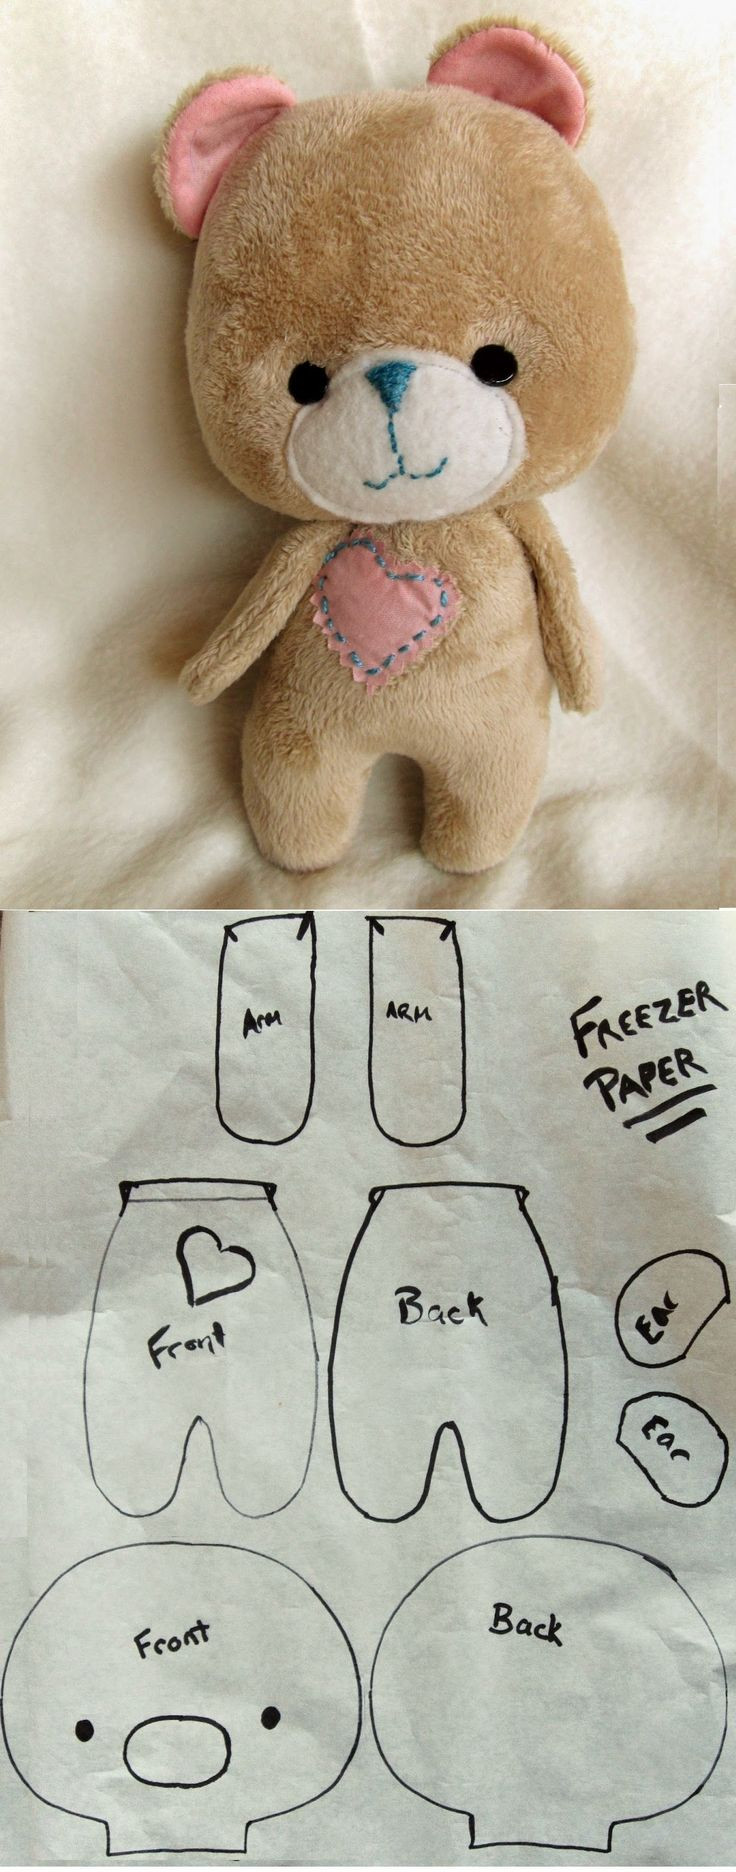 Best ideas about DIY Teddy Bear . Save or Pin Best 25 Bear patterns ideas on Pinterest Now.